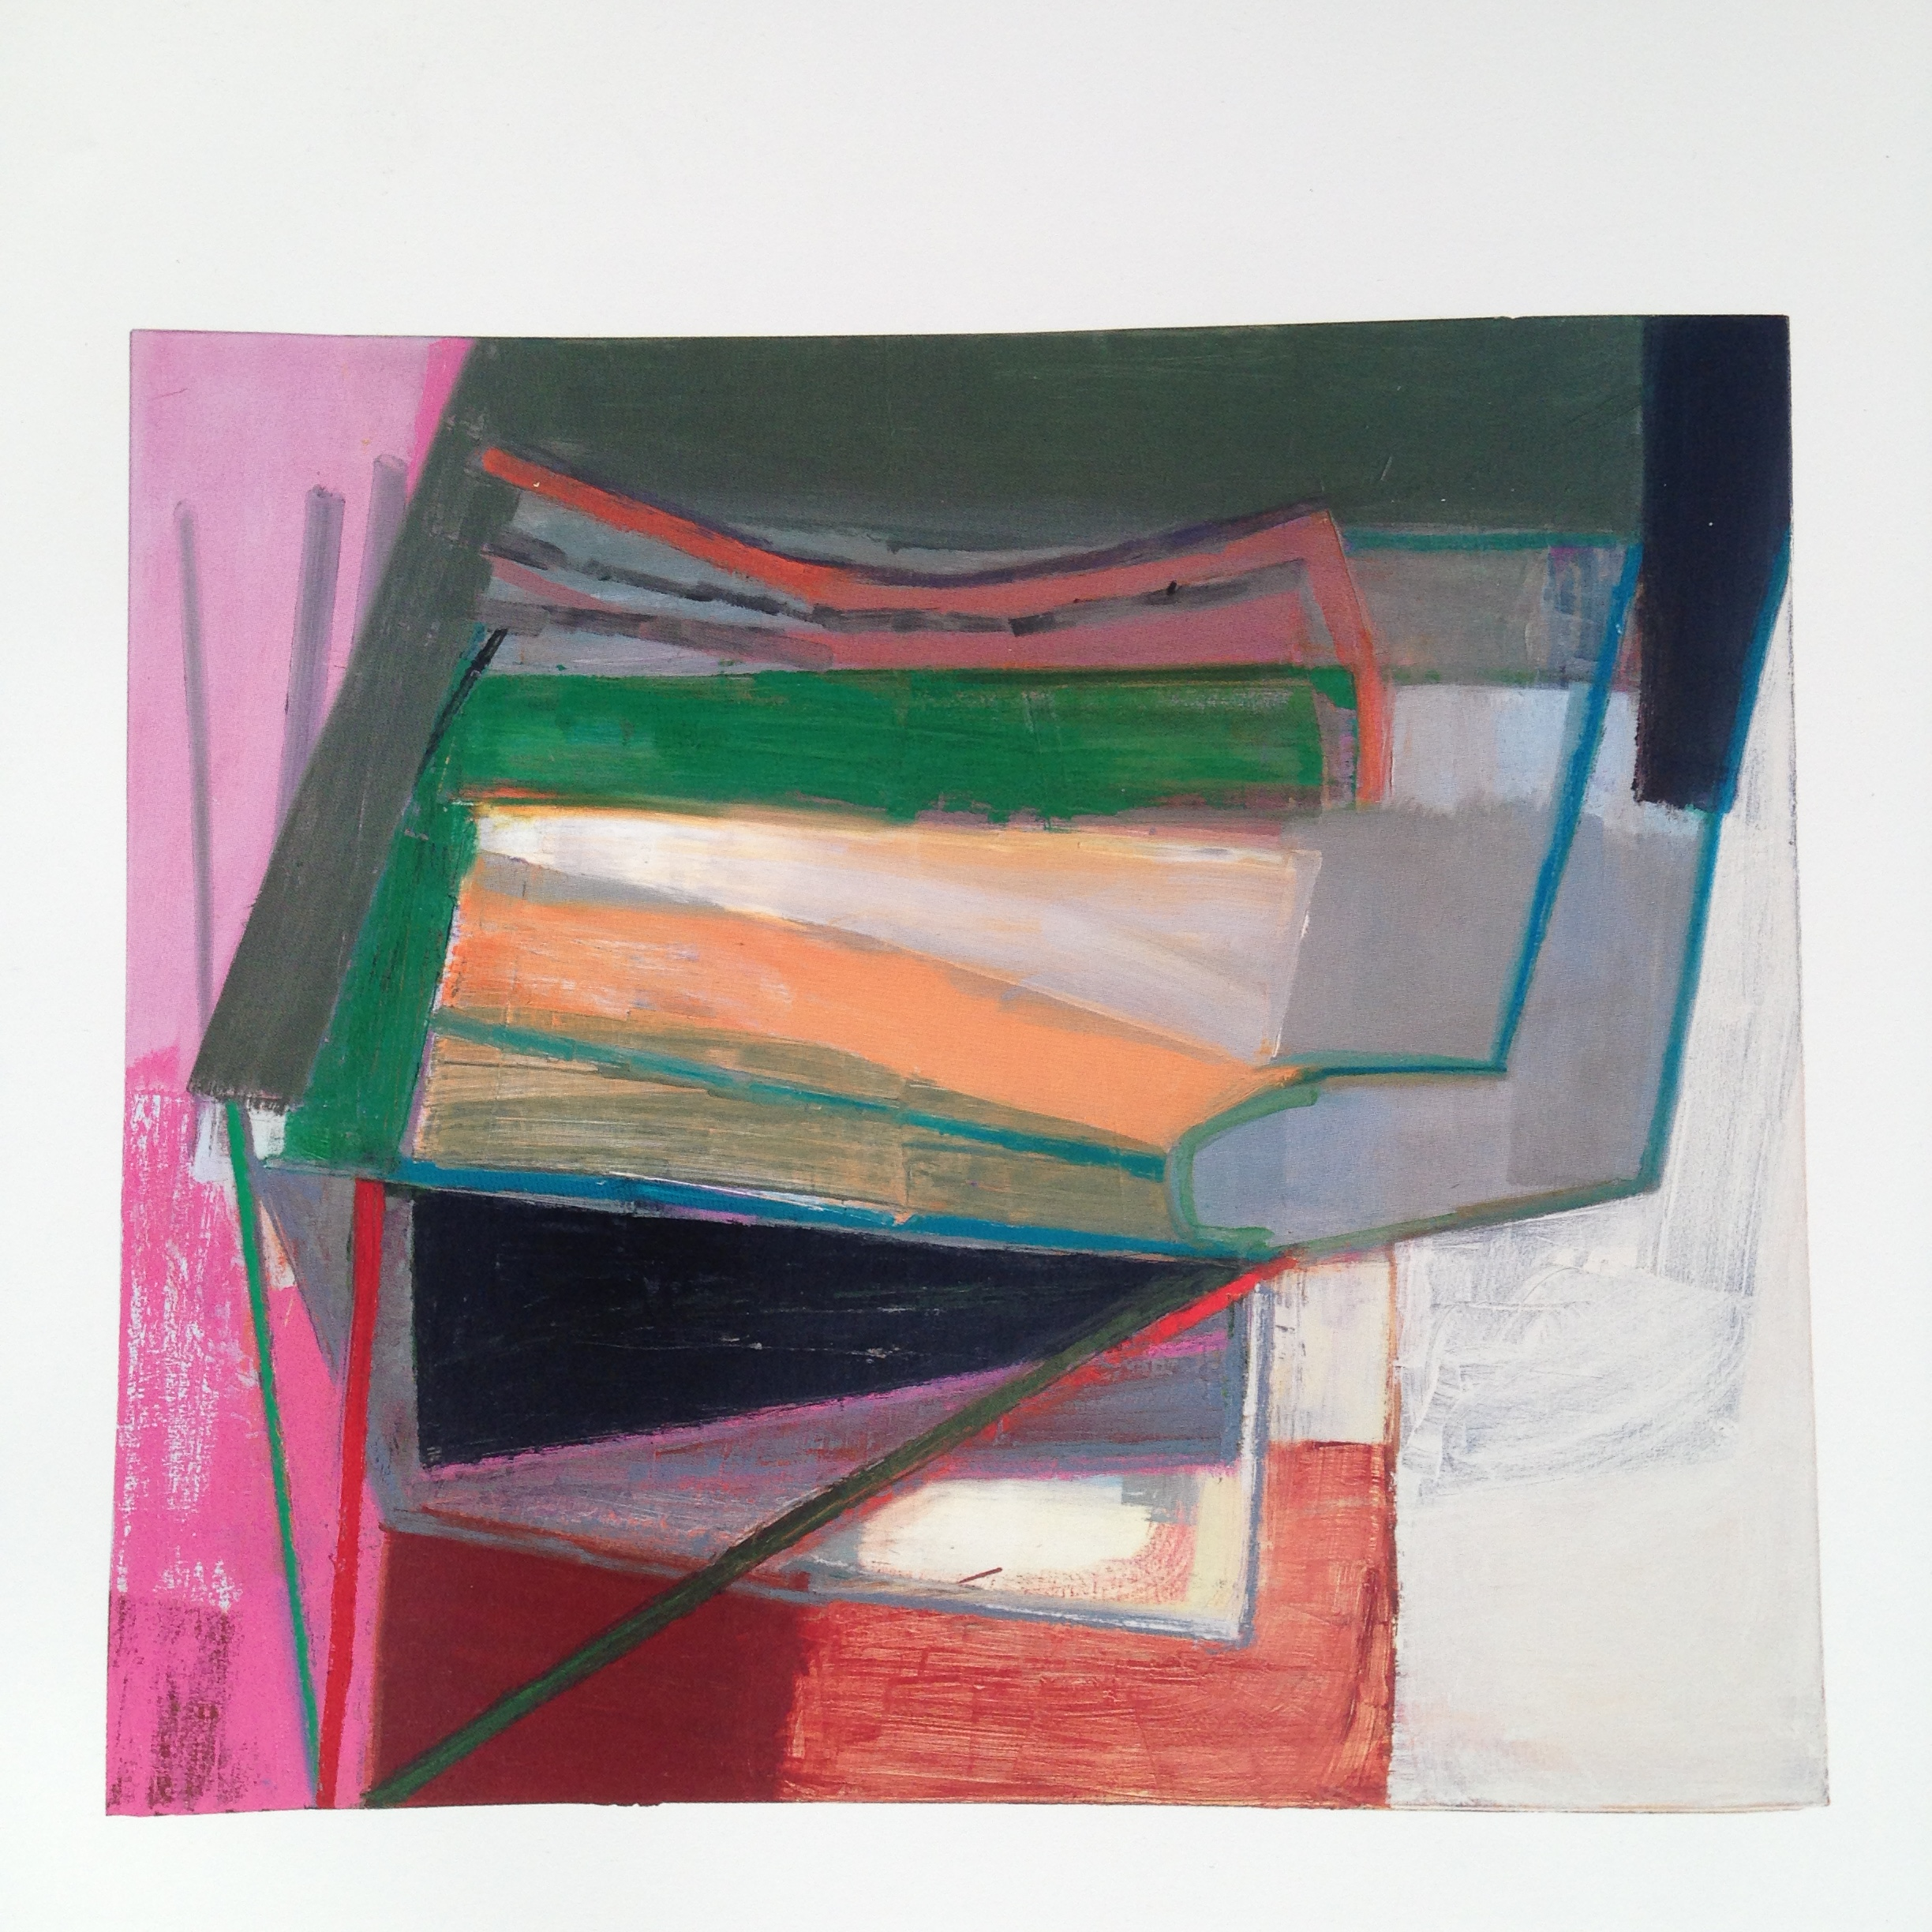 Discovering American artist  Amy Sillman  was like finding a piece of chocolate on my desk around 3 o'clock slump time!So exciting! I was immediately attracted to her work for its extraordinary use of colour and form. Quite beautiful stuff which left me feeling quite inspired. Here are a couple more of hers...